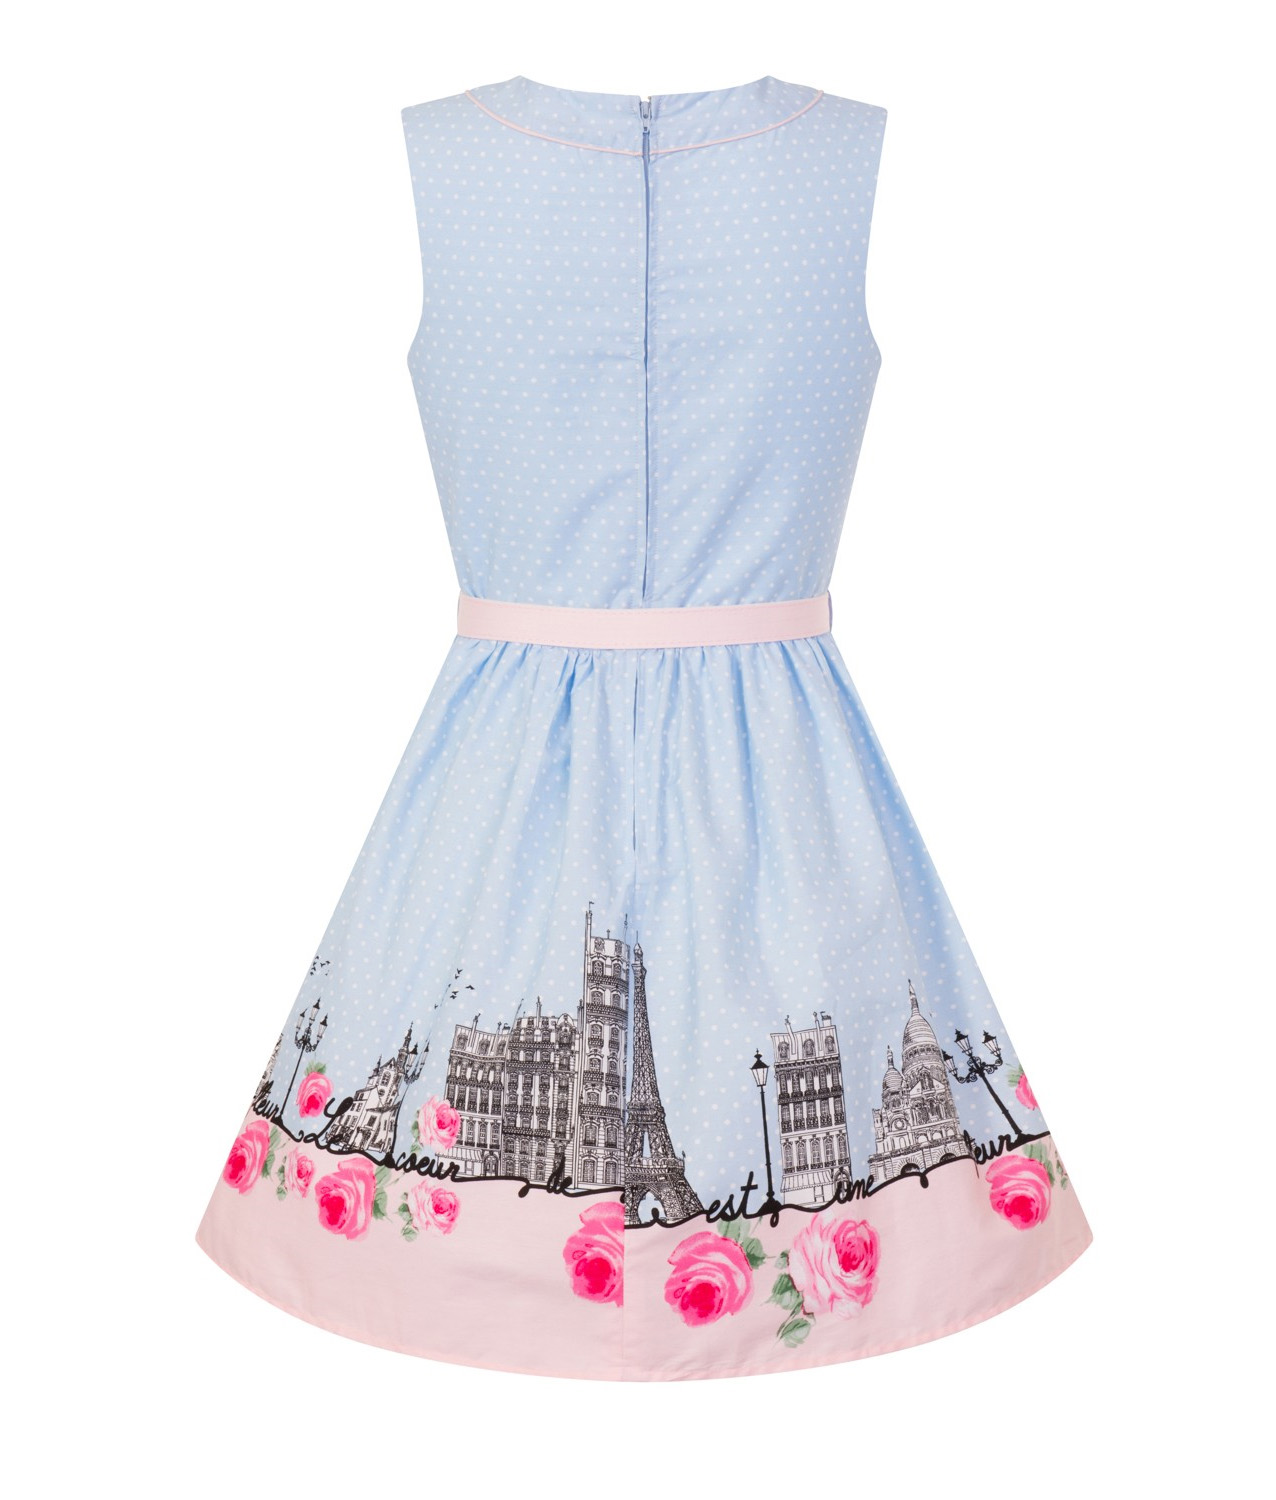 Hell-Bunny-50s-Vintage-Blue-Polka-Dot-PANAME-Mini-Dress-Paris-All-Sizes thumbnail 31